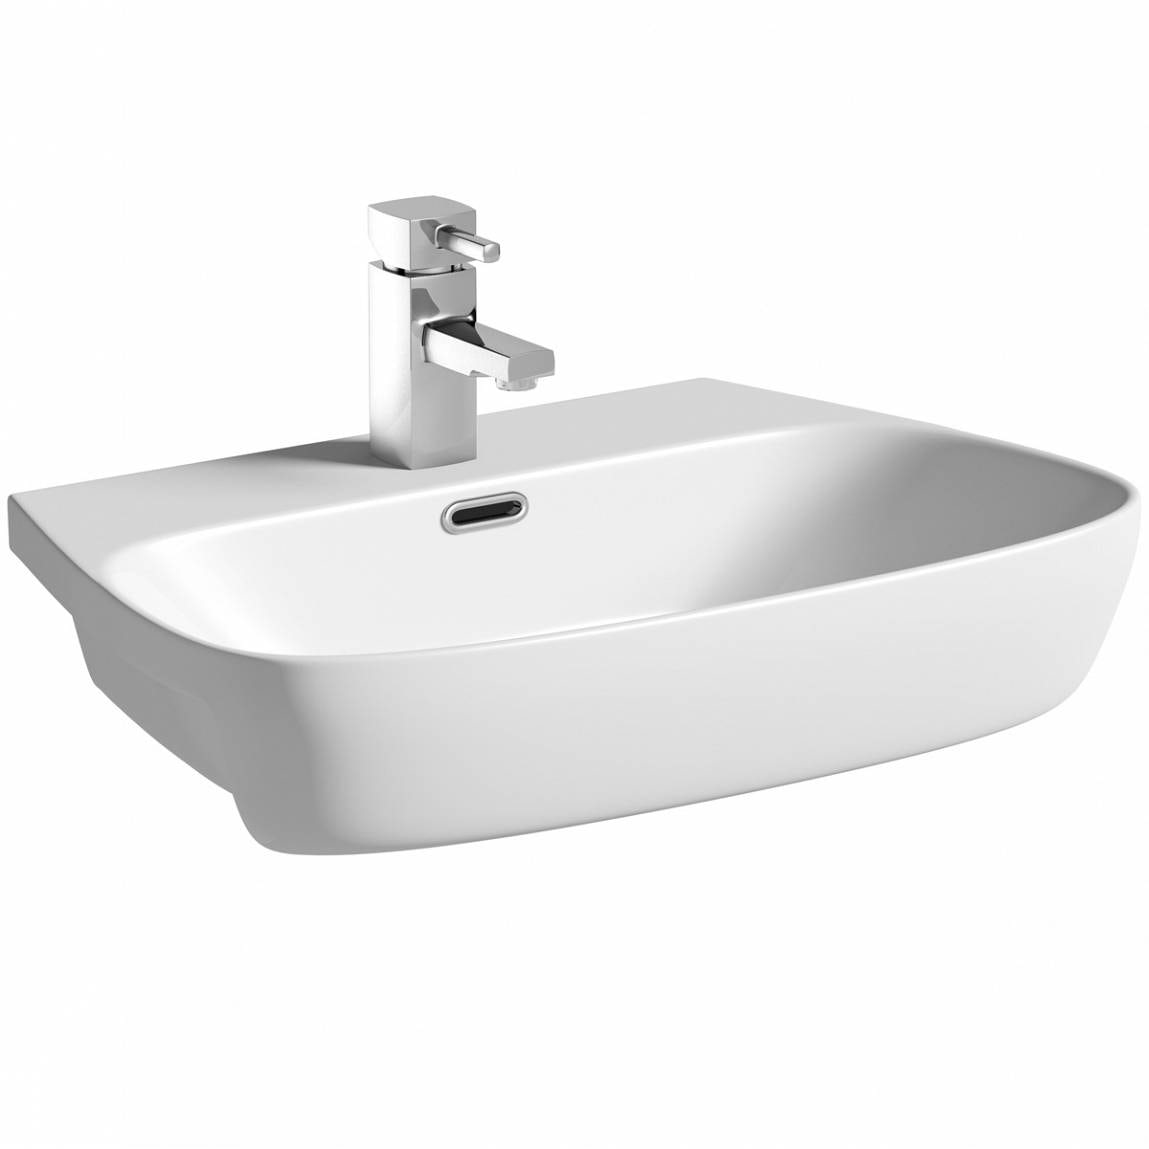 Mode Foster 1 tap hole semi recessed countertop basin 600mm with waste